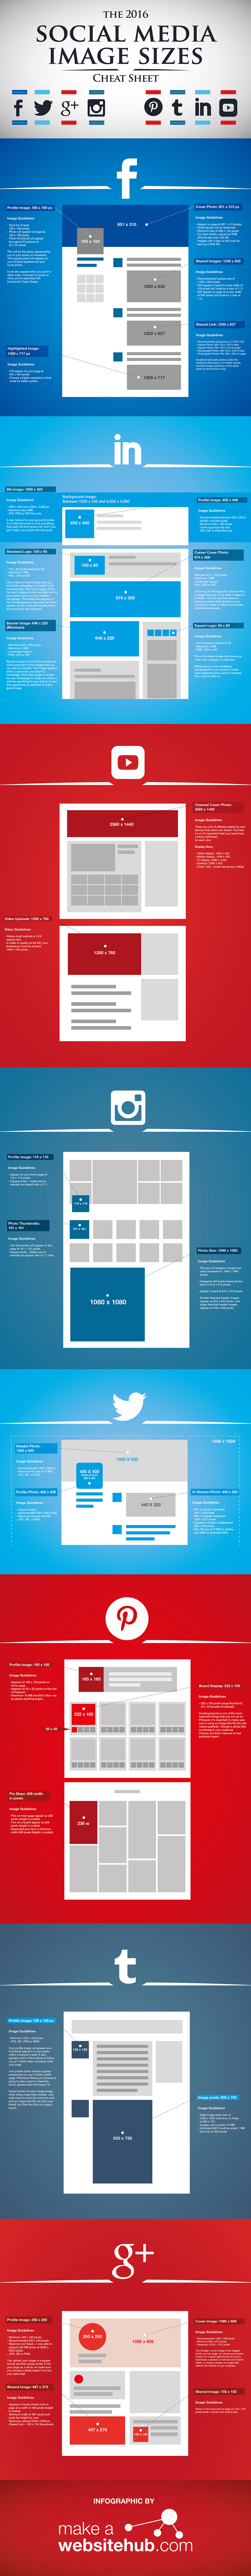 Ultimate guide to photo & image sizes on Facebook, Twitter